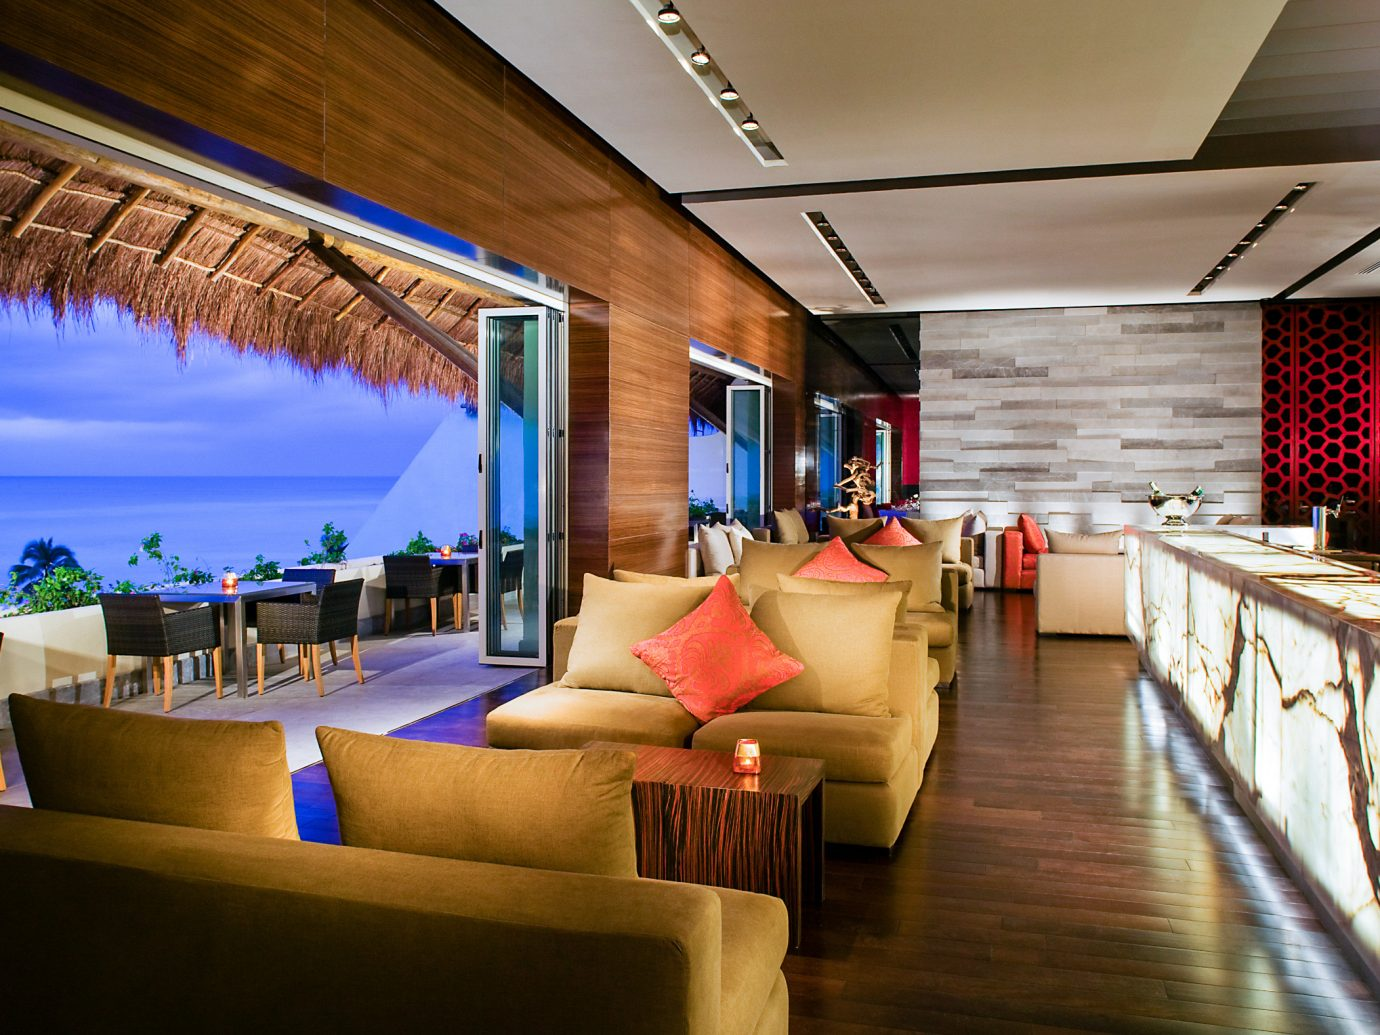 Restaurant at Grand Velas, Riviera Maya